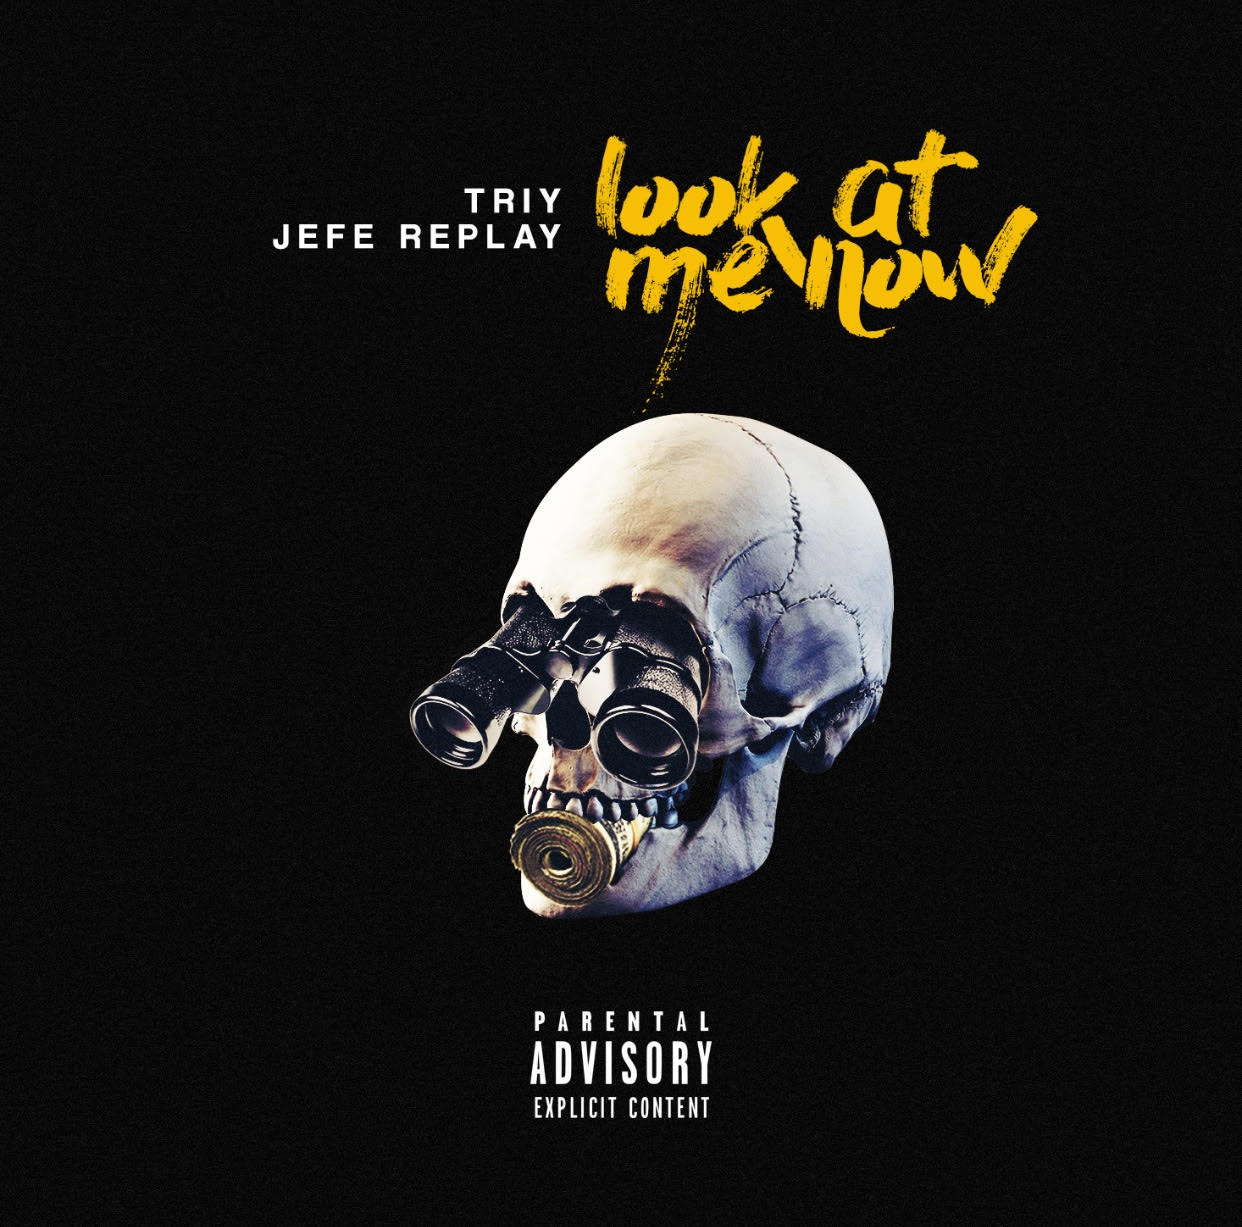 """Triy – """"Look At Me Now"""" (feat. Jefe Replay)"""